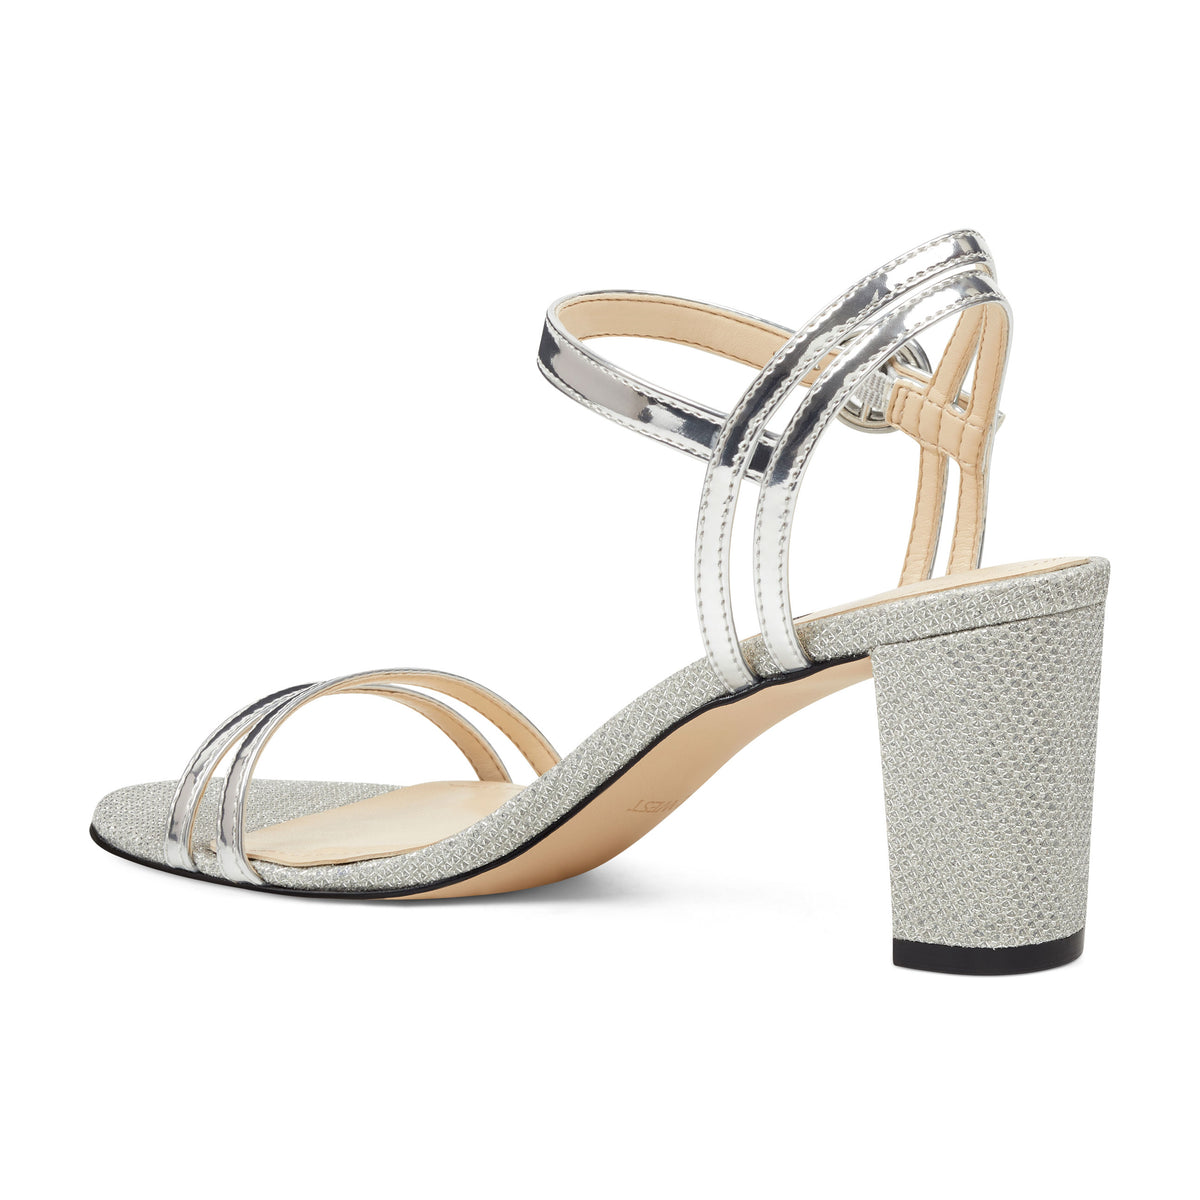 Piper Open Toe Sandals